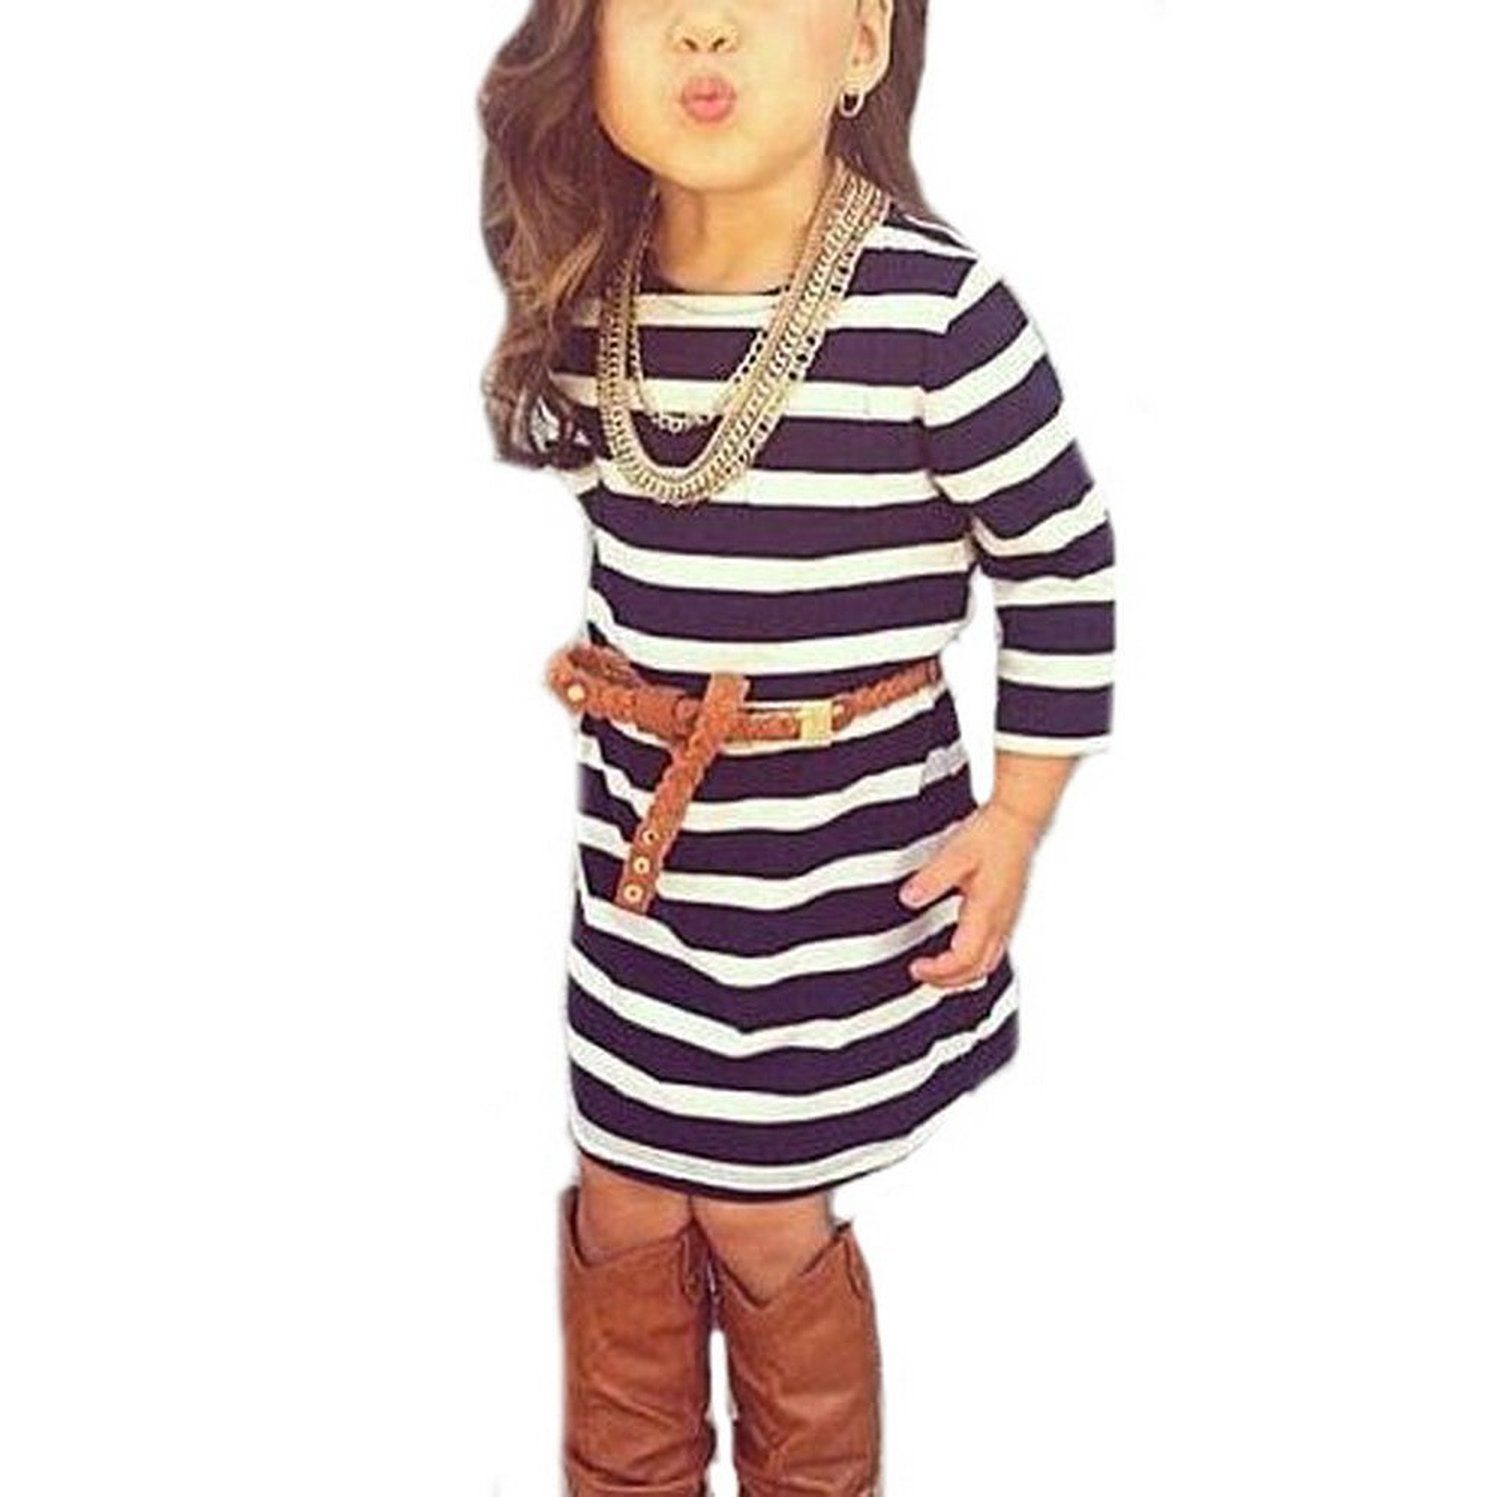 2pcs Baby Girls Long Sleeve Striped Dress Kids Casual Clothes Outfits 3-4T Striped